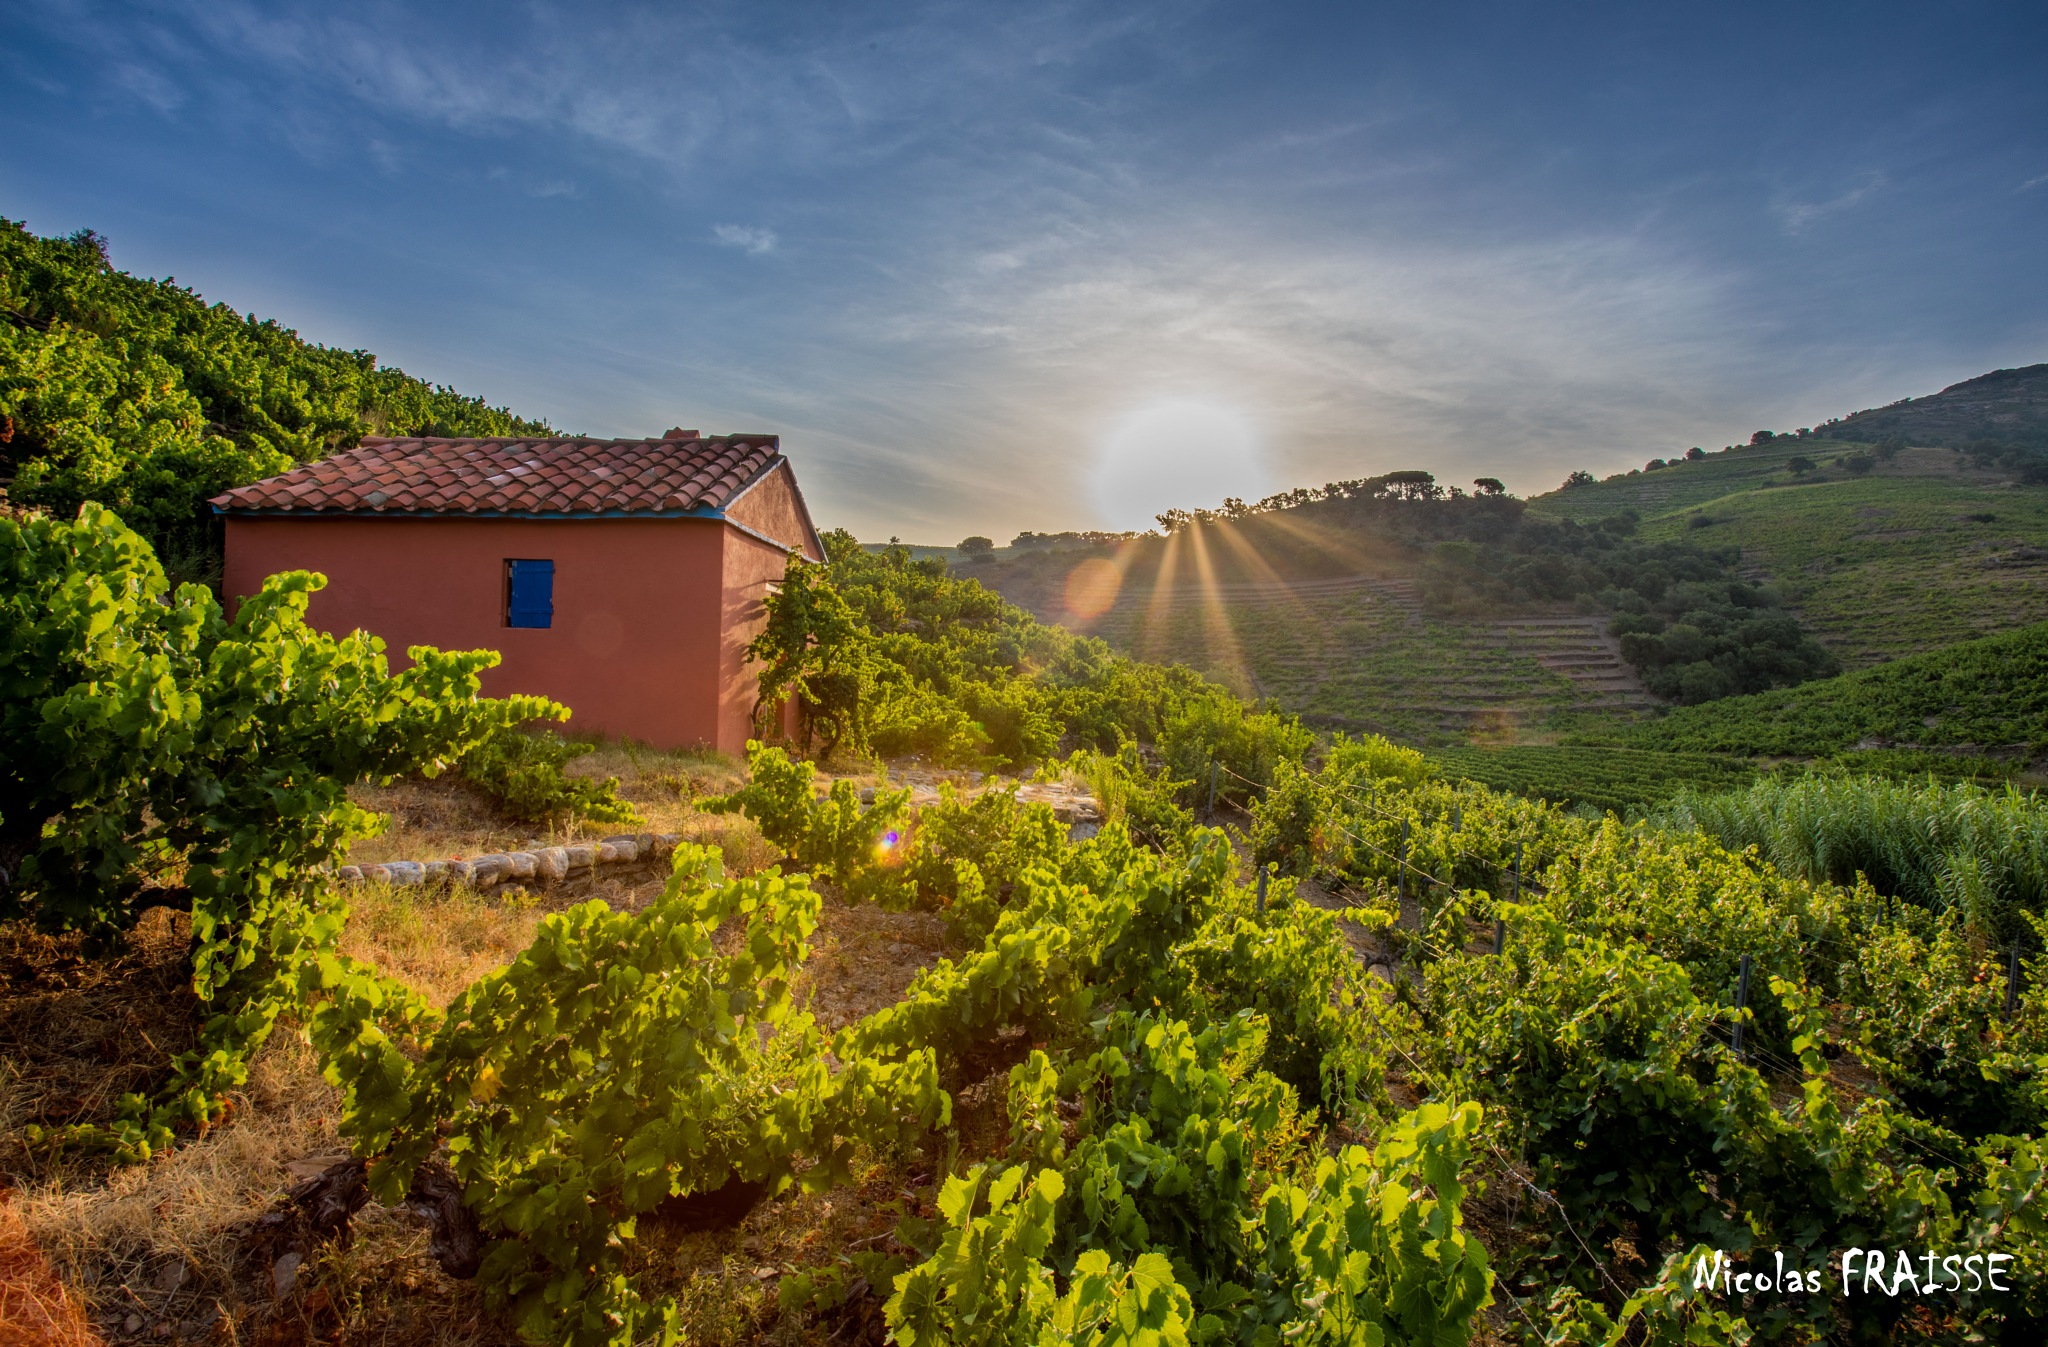 Sunrise in the wineyards of Collioure by Nicolas F.